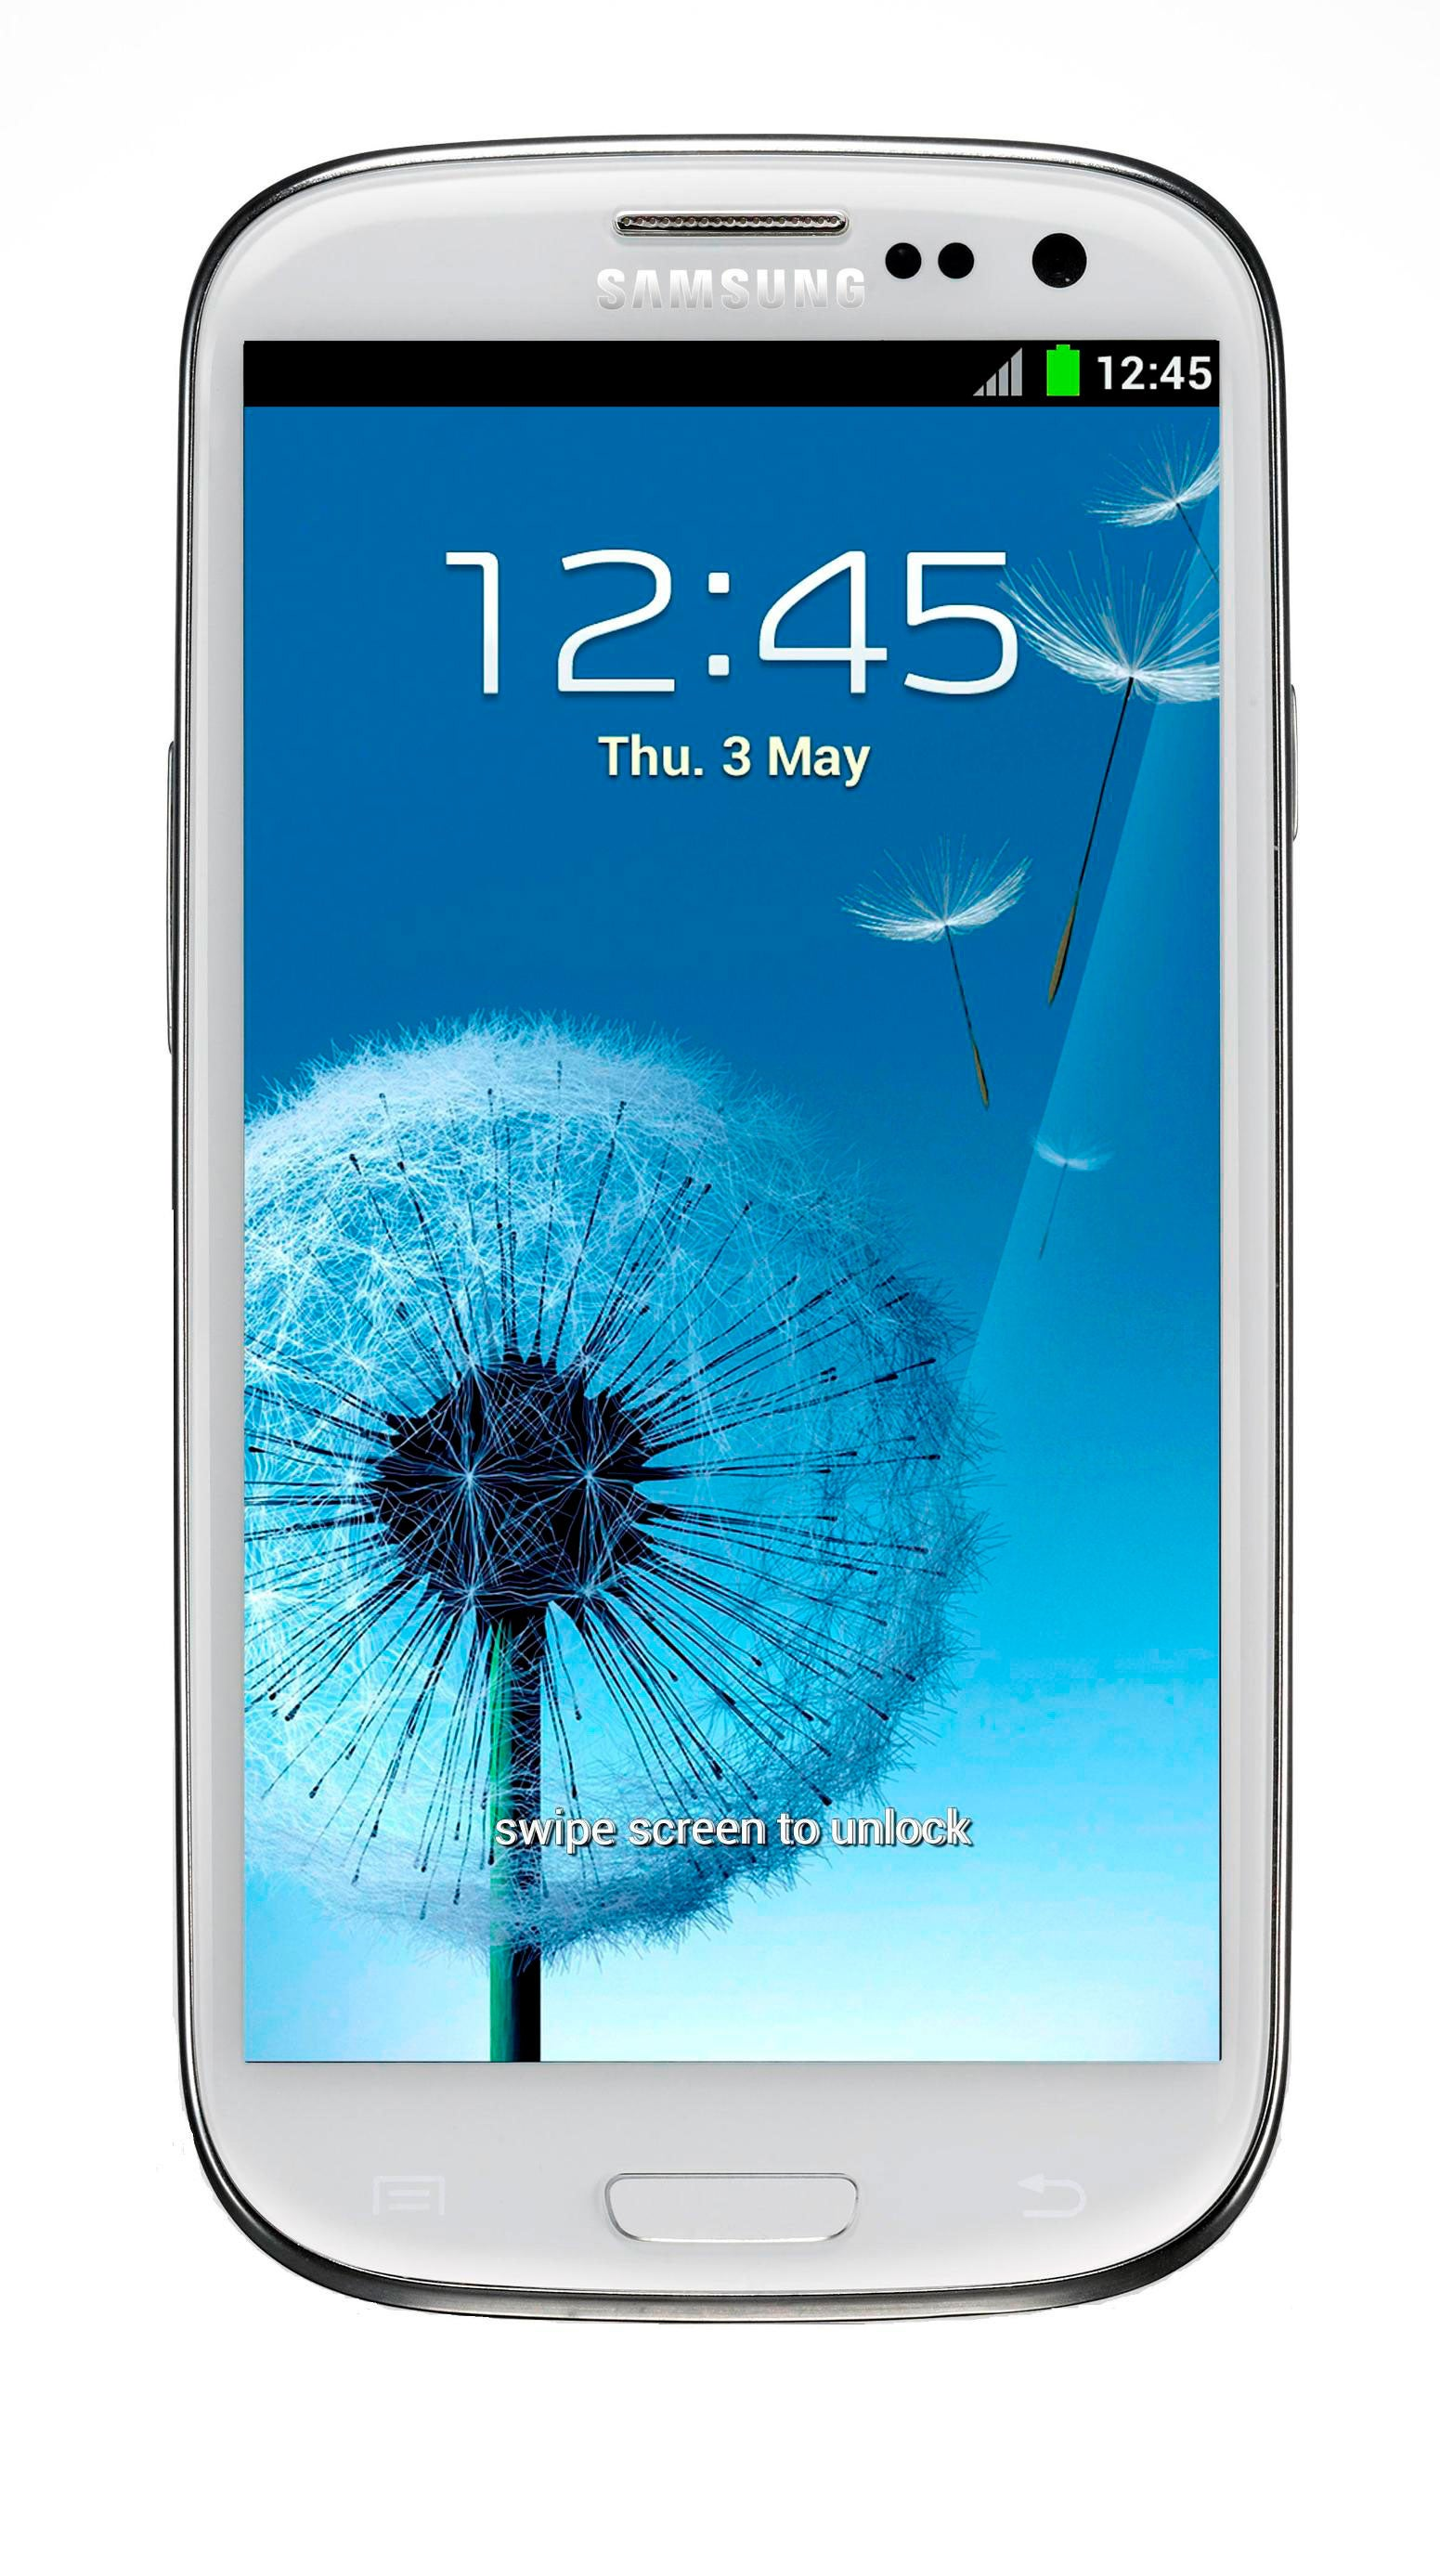 Samsung Galaxy S III I9300 16GB GSM Unlocked Android 4.0 Cell Phone